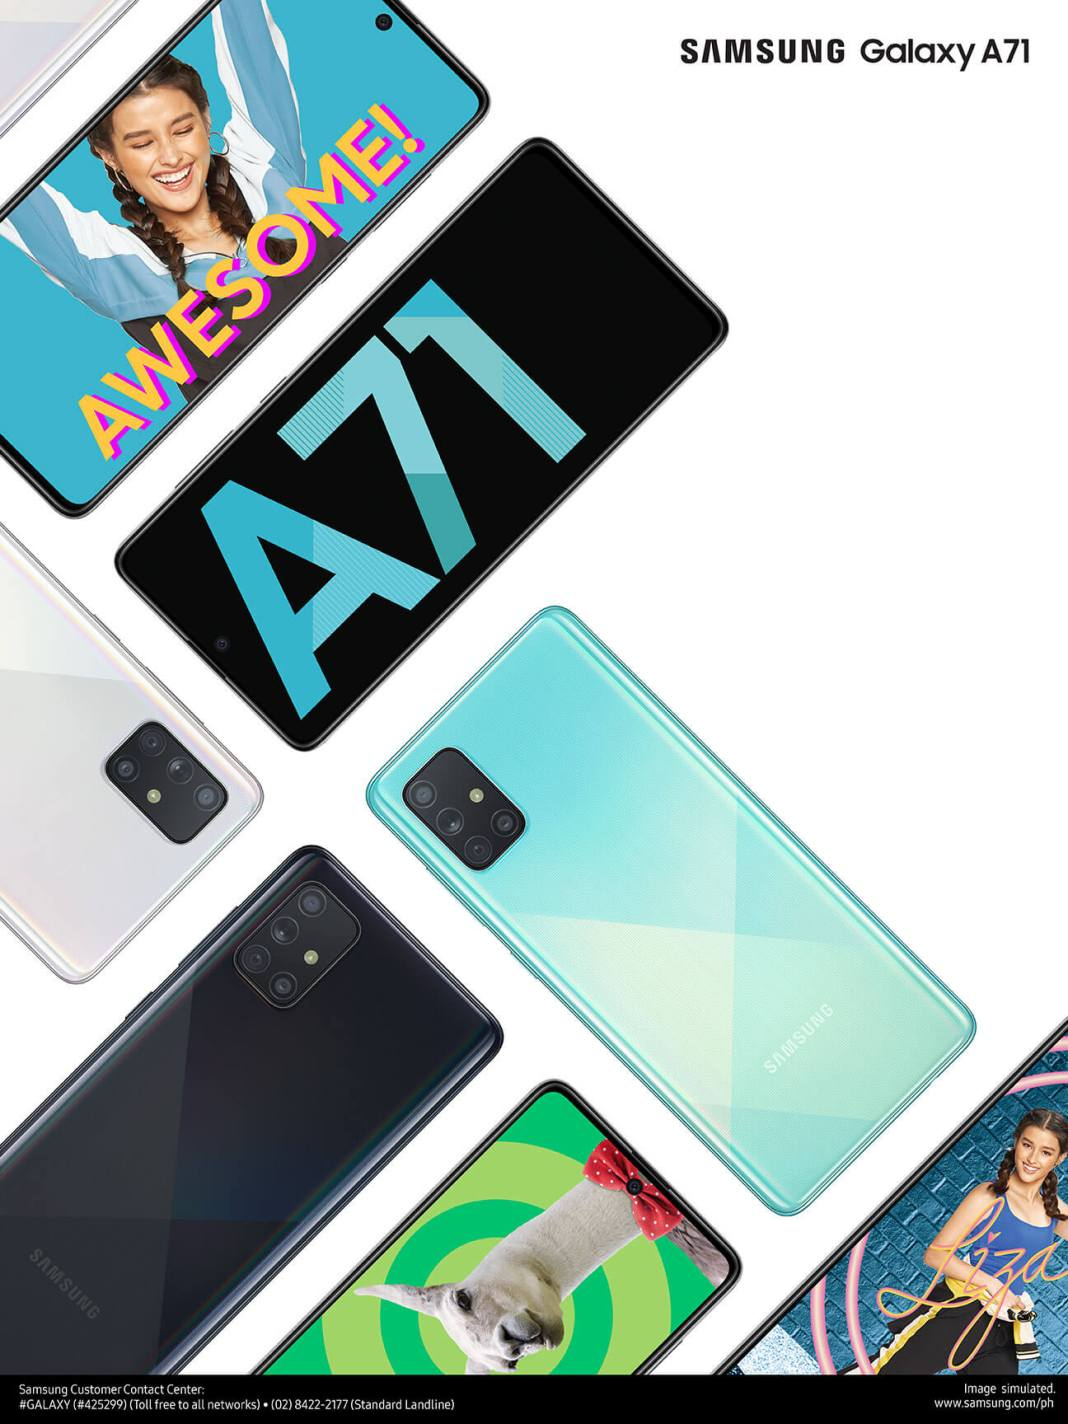 Galaxy A71, Samsung Galaxy A71 Now Available in Stores!, Gadget Pilipinas, Gadget Pilipinas